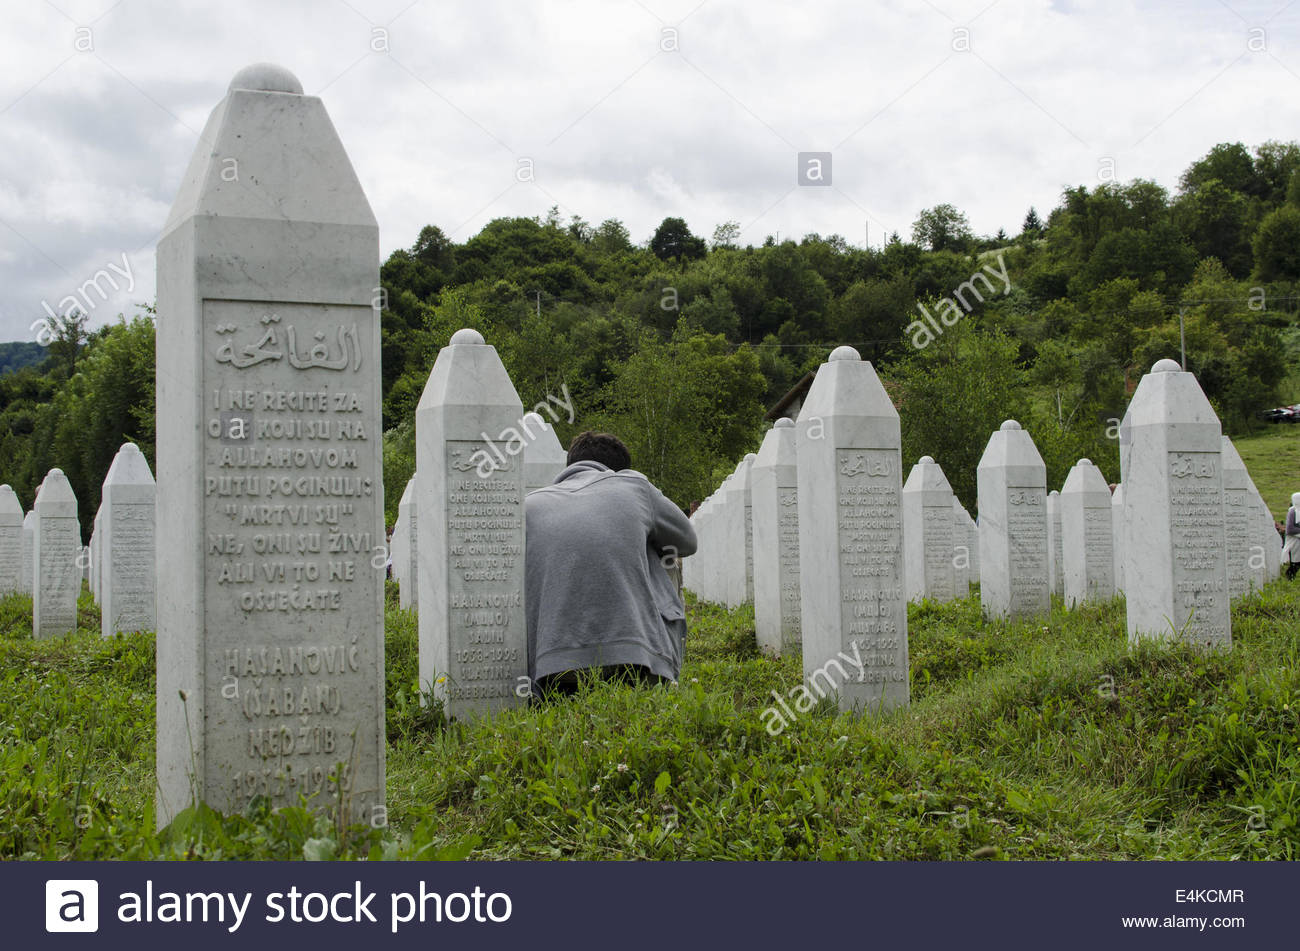 Srebrenica Stock Photos Srebrenica Stock Images   Alamy 1300x951